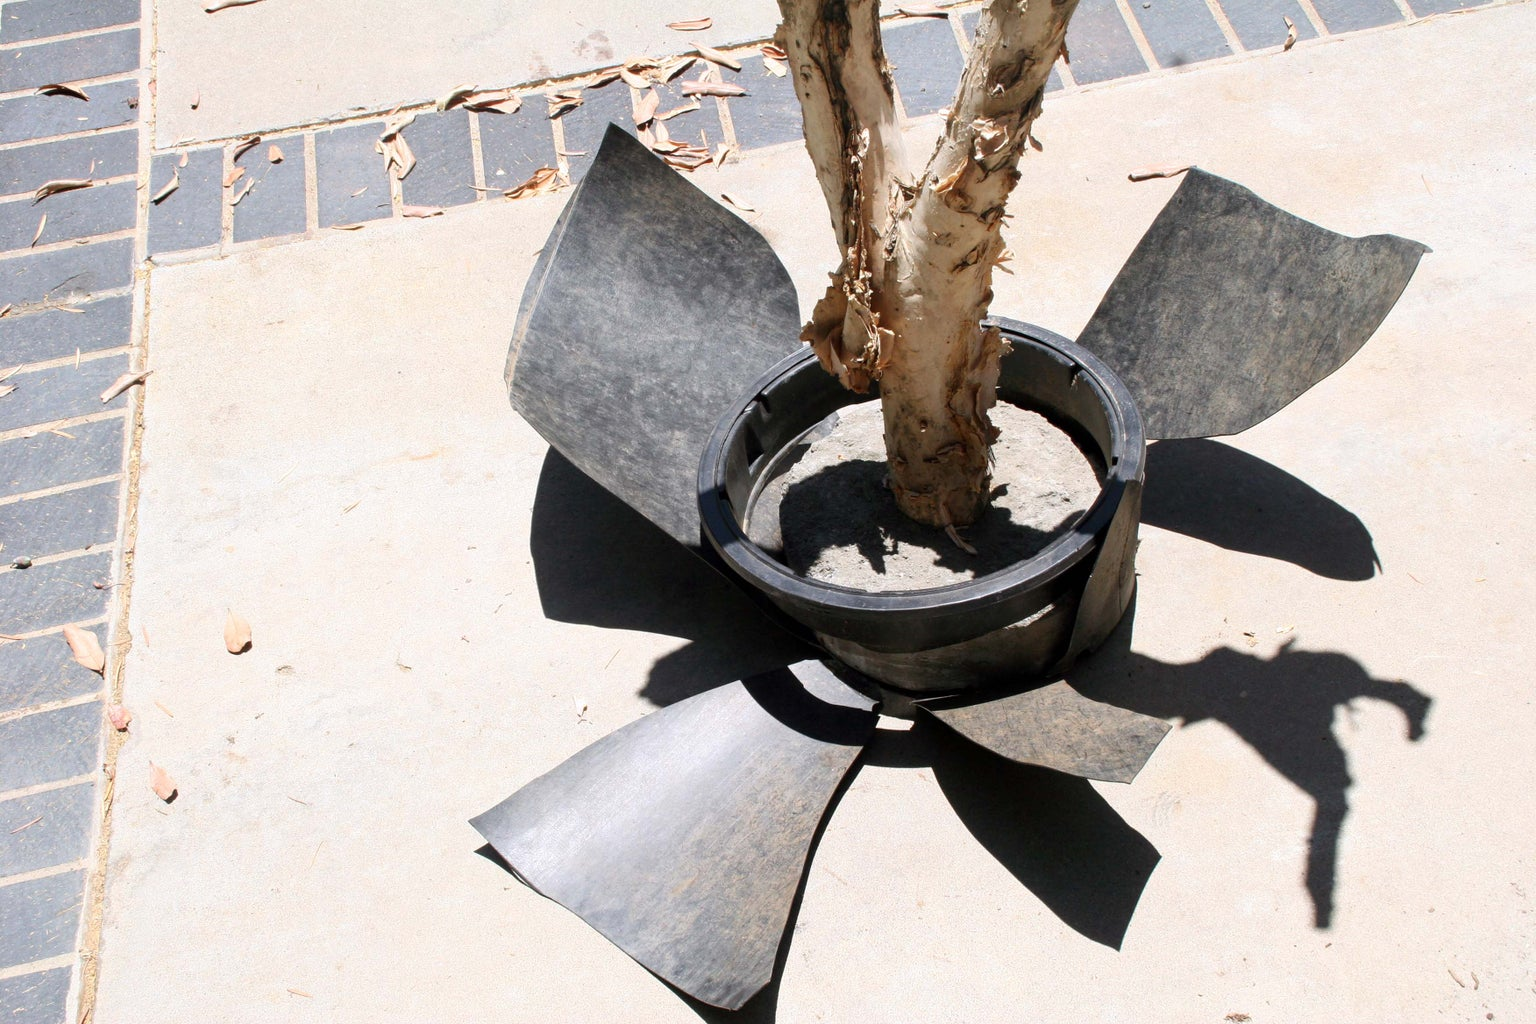 Remove the Branch From the Pot